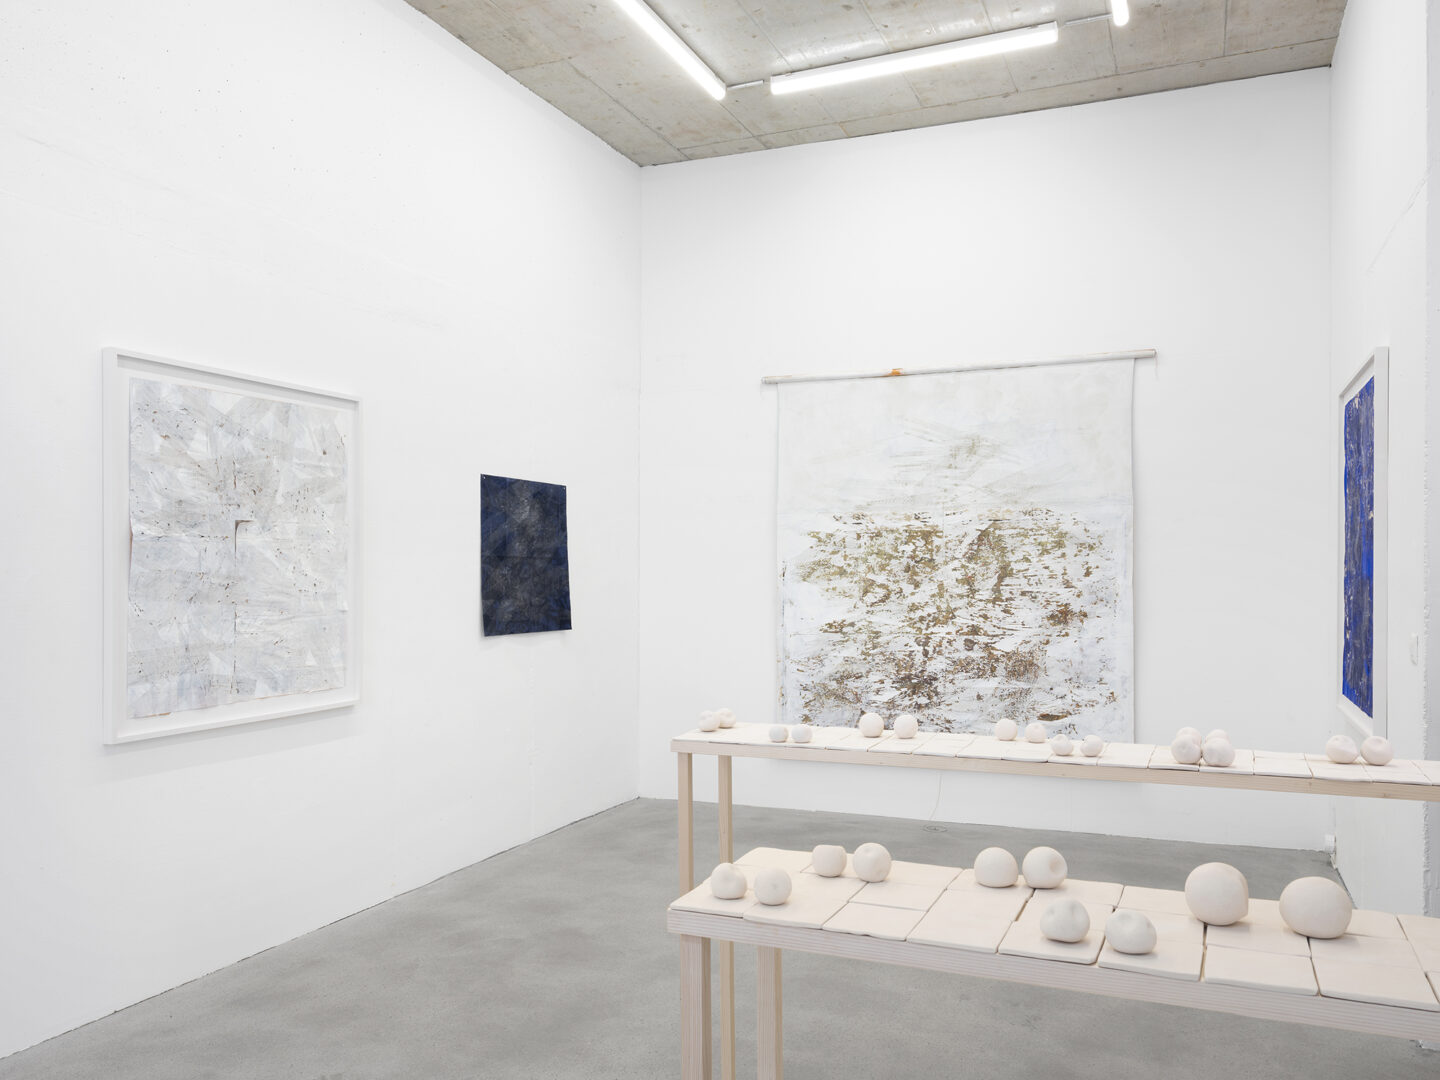 Exhibition View Sophie Bouvier Ausländer Soloshow «Words, Works, Worlds» at Galerie Heinzer Reszler, Lausanne, 2019 / Photo: Julien Gremaud / Courtesy: the artist and Galerie Heinzer Reszler